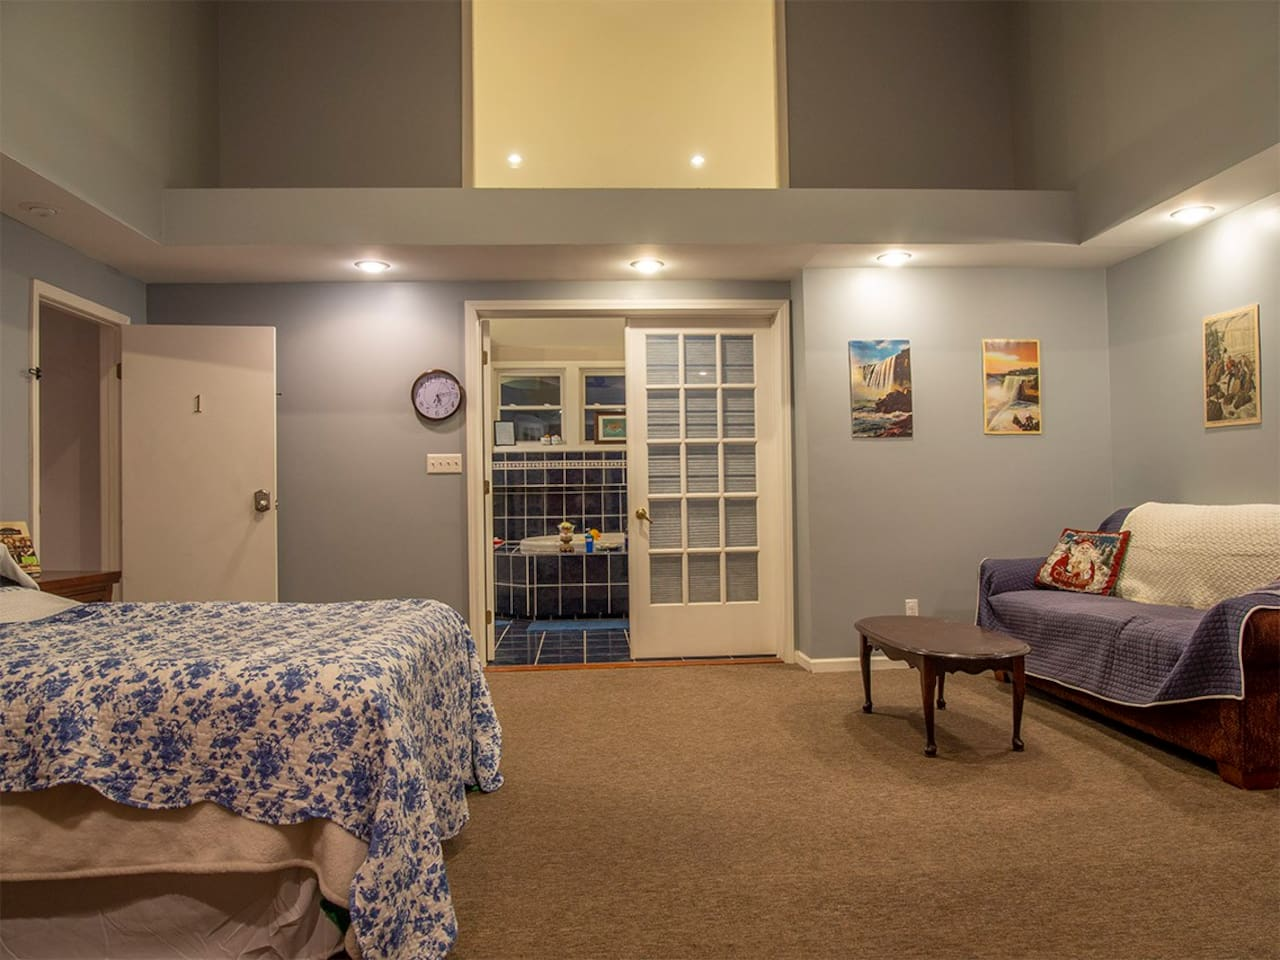 Queen bed/sofabed/view to spa bathroom with steamroom shower & Jacuzzi tub